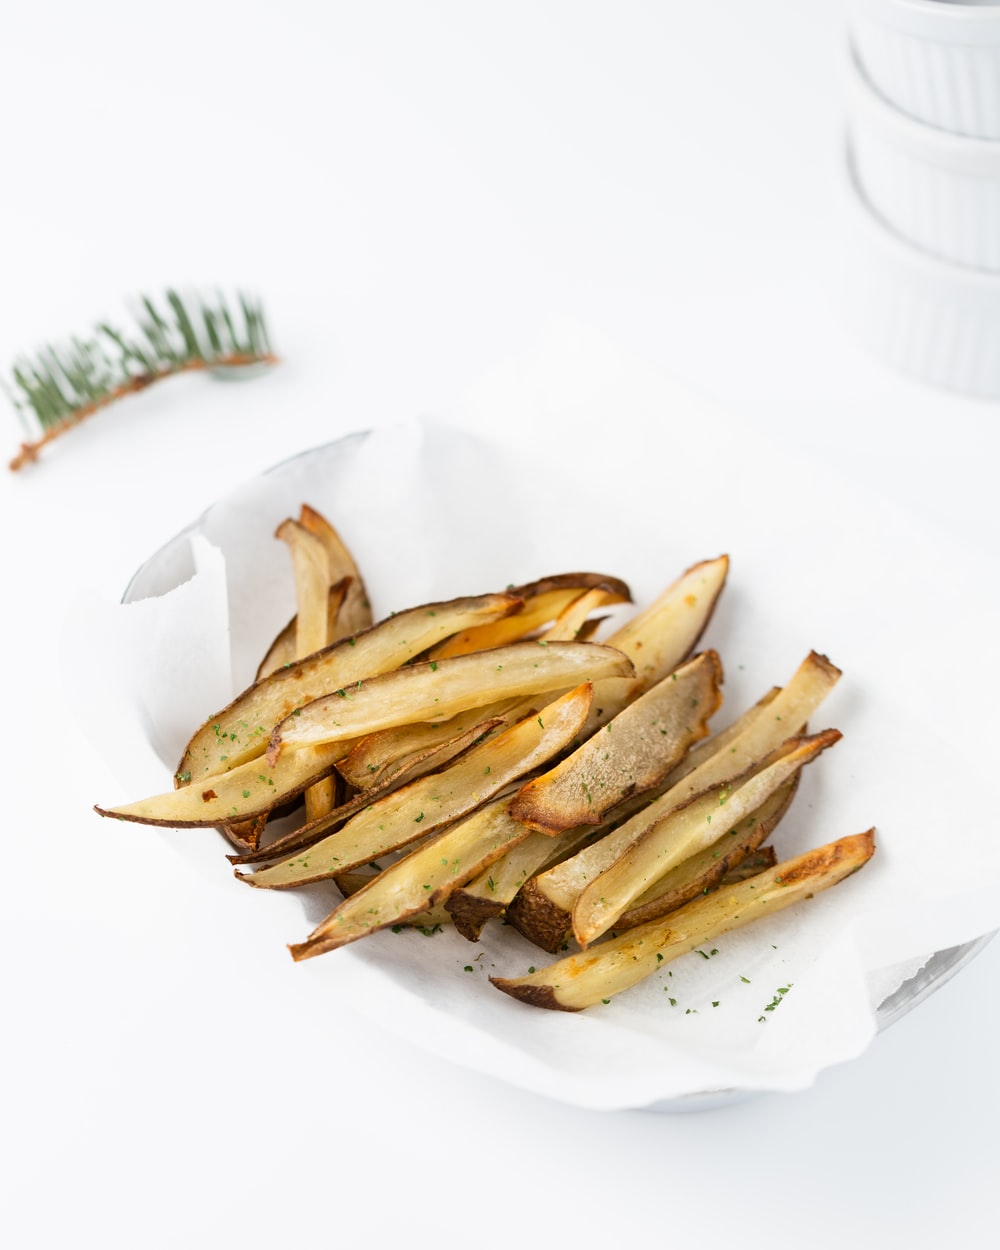 fried vegetables in white ceramic plate